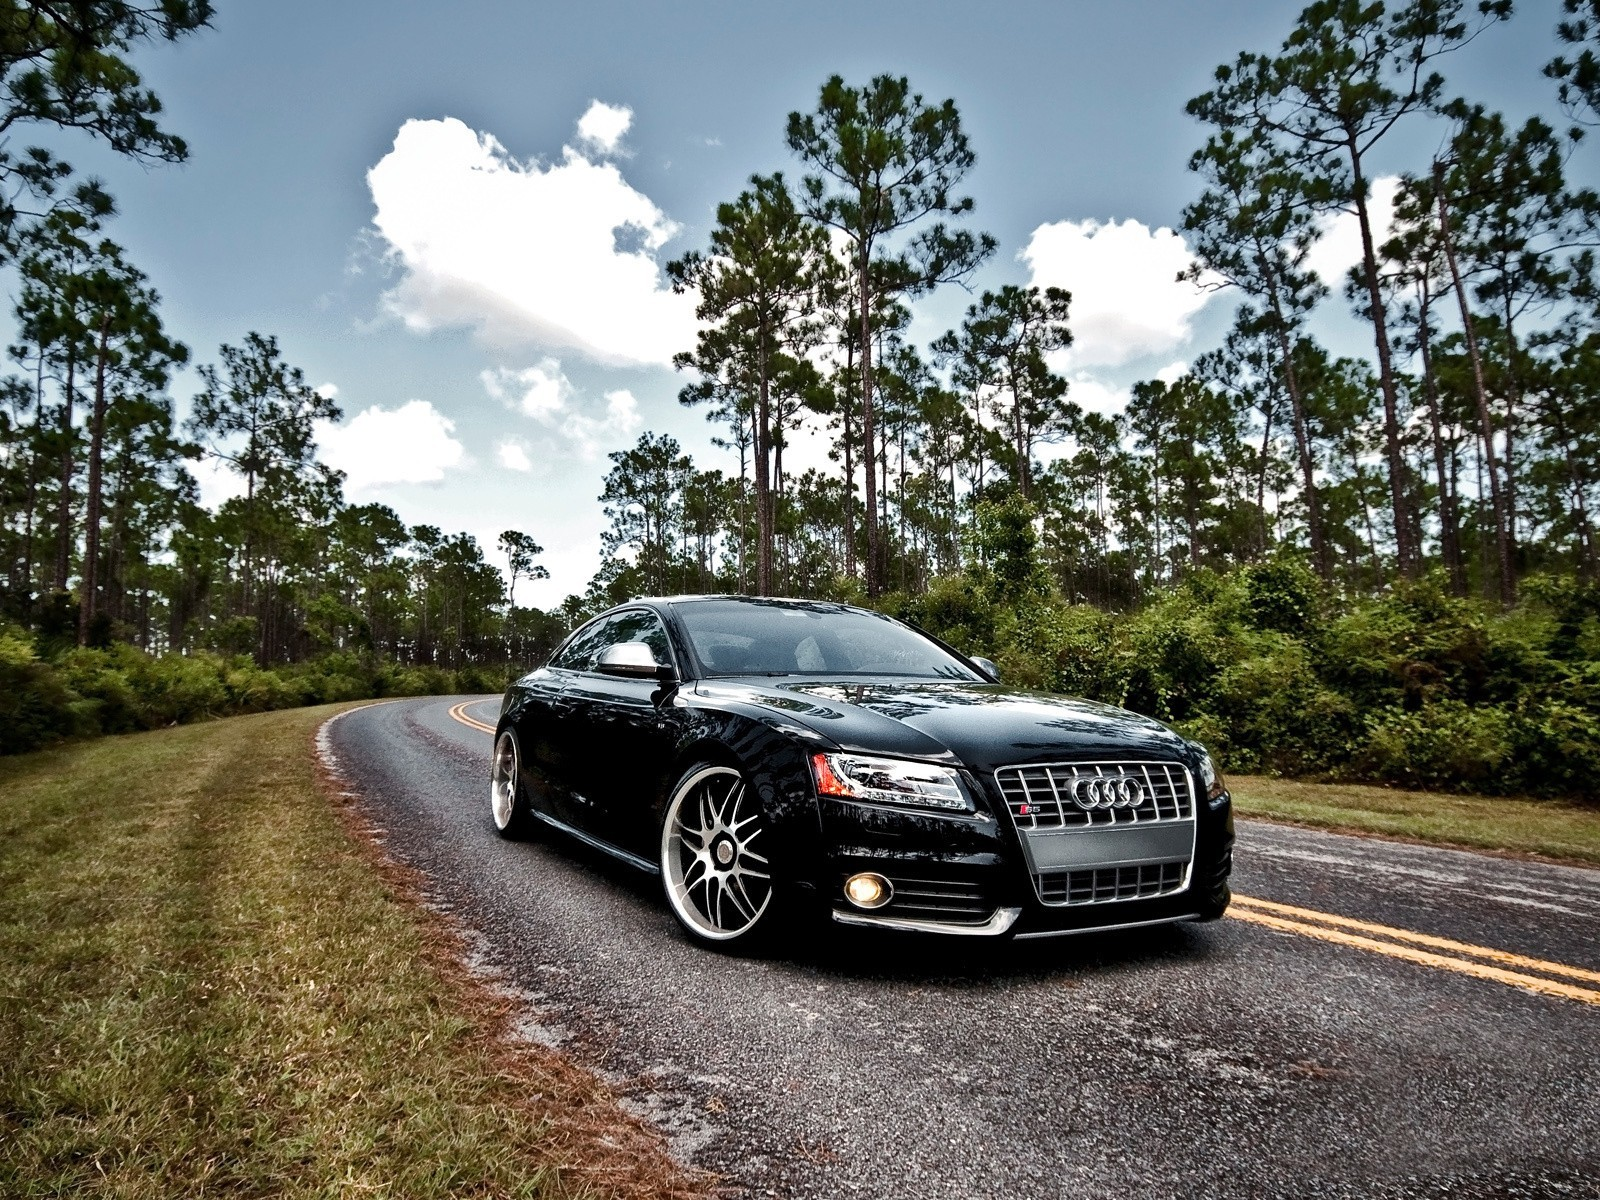 cars Audi roads audi HD Wallpaper